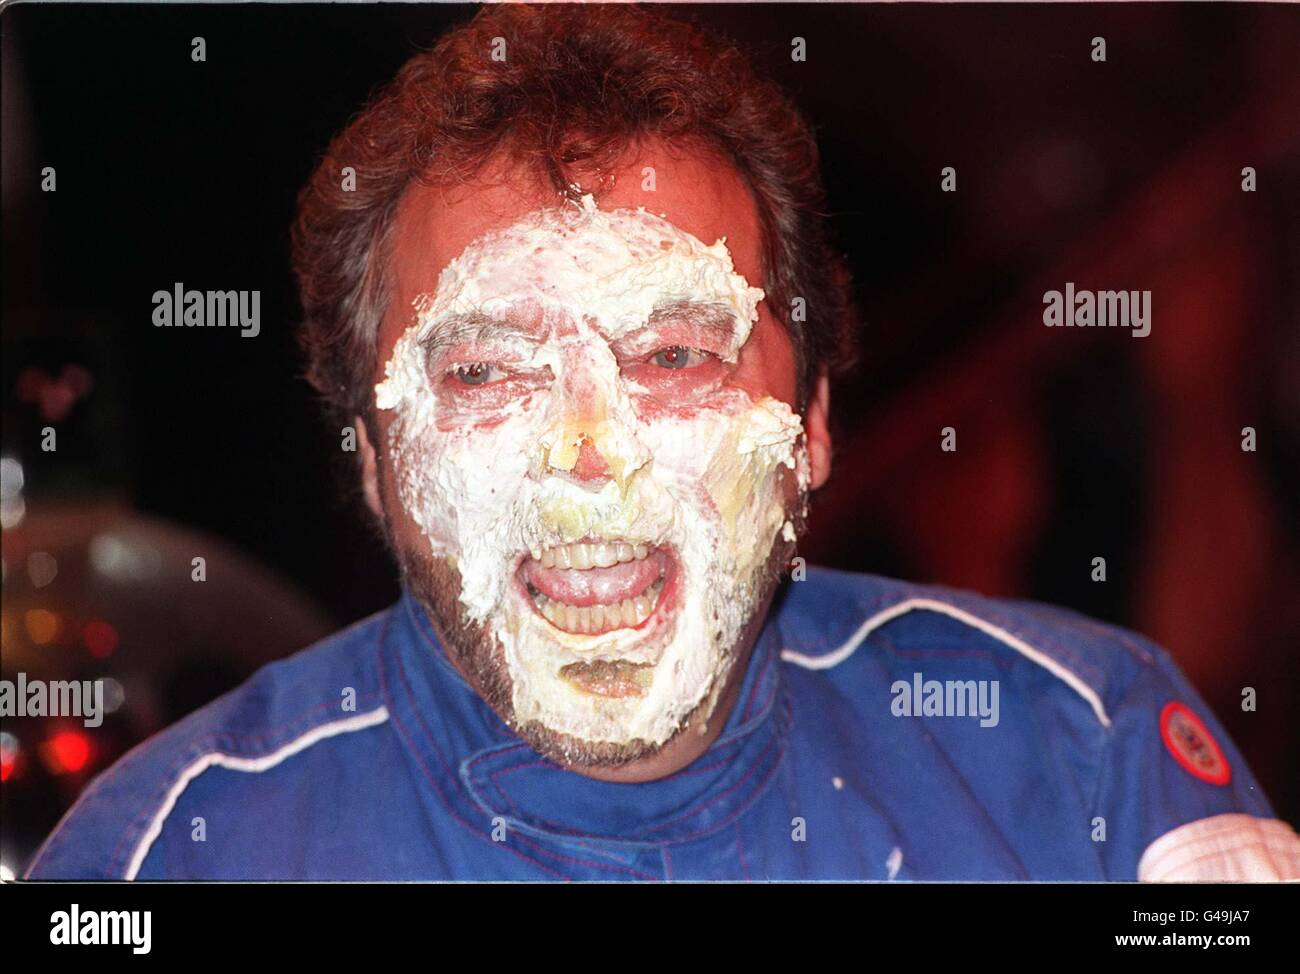 BEADLE/Pie in face 3 - Stock Image